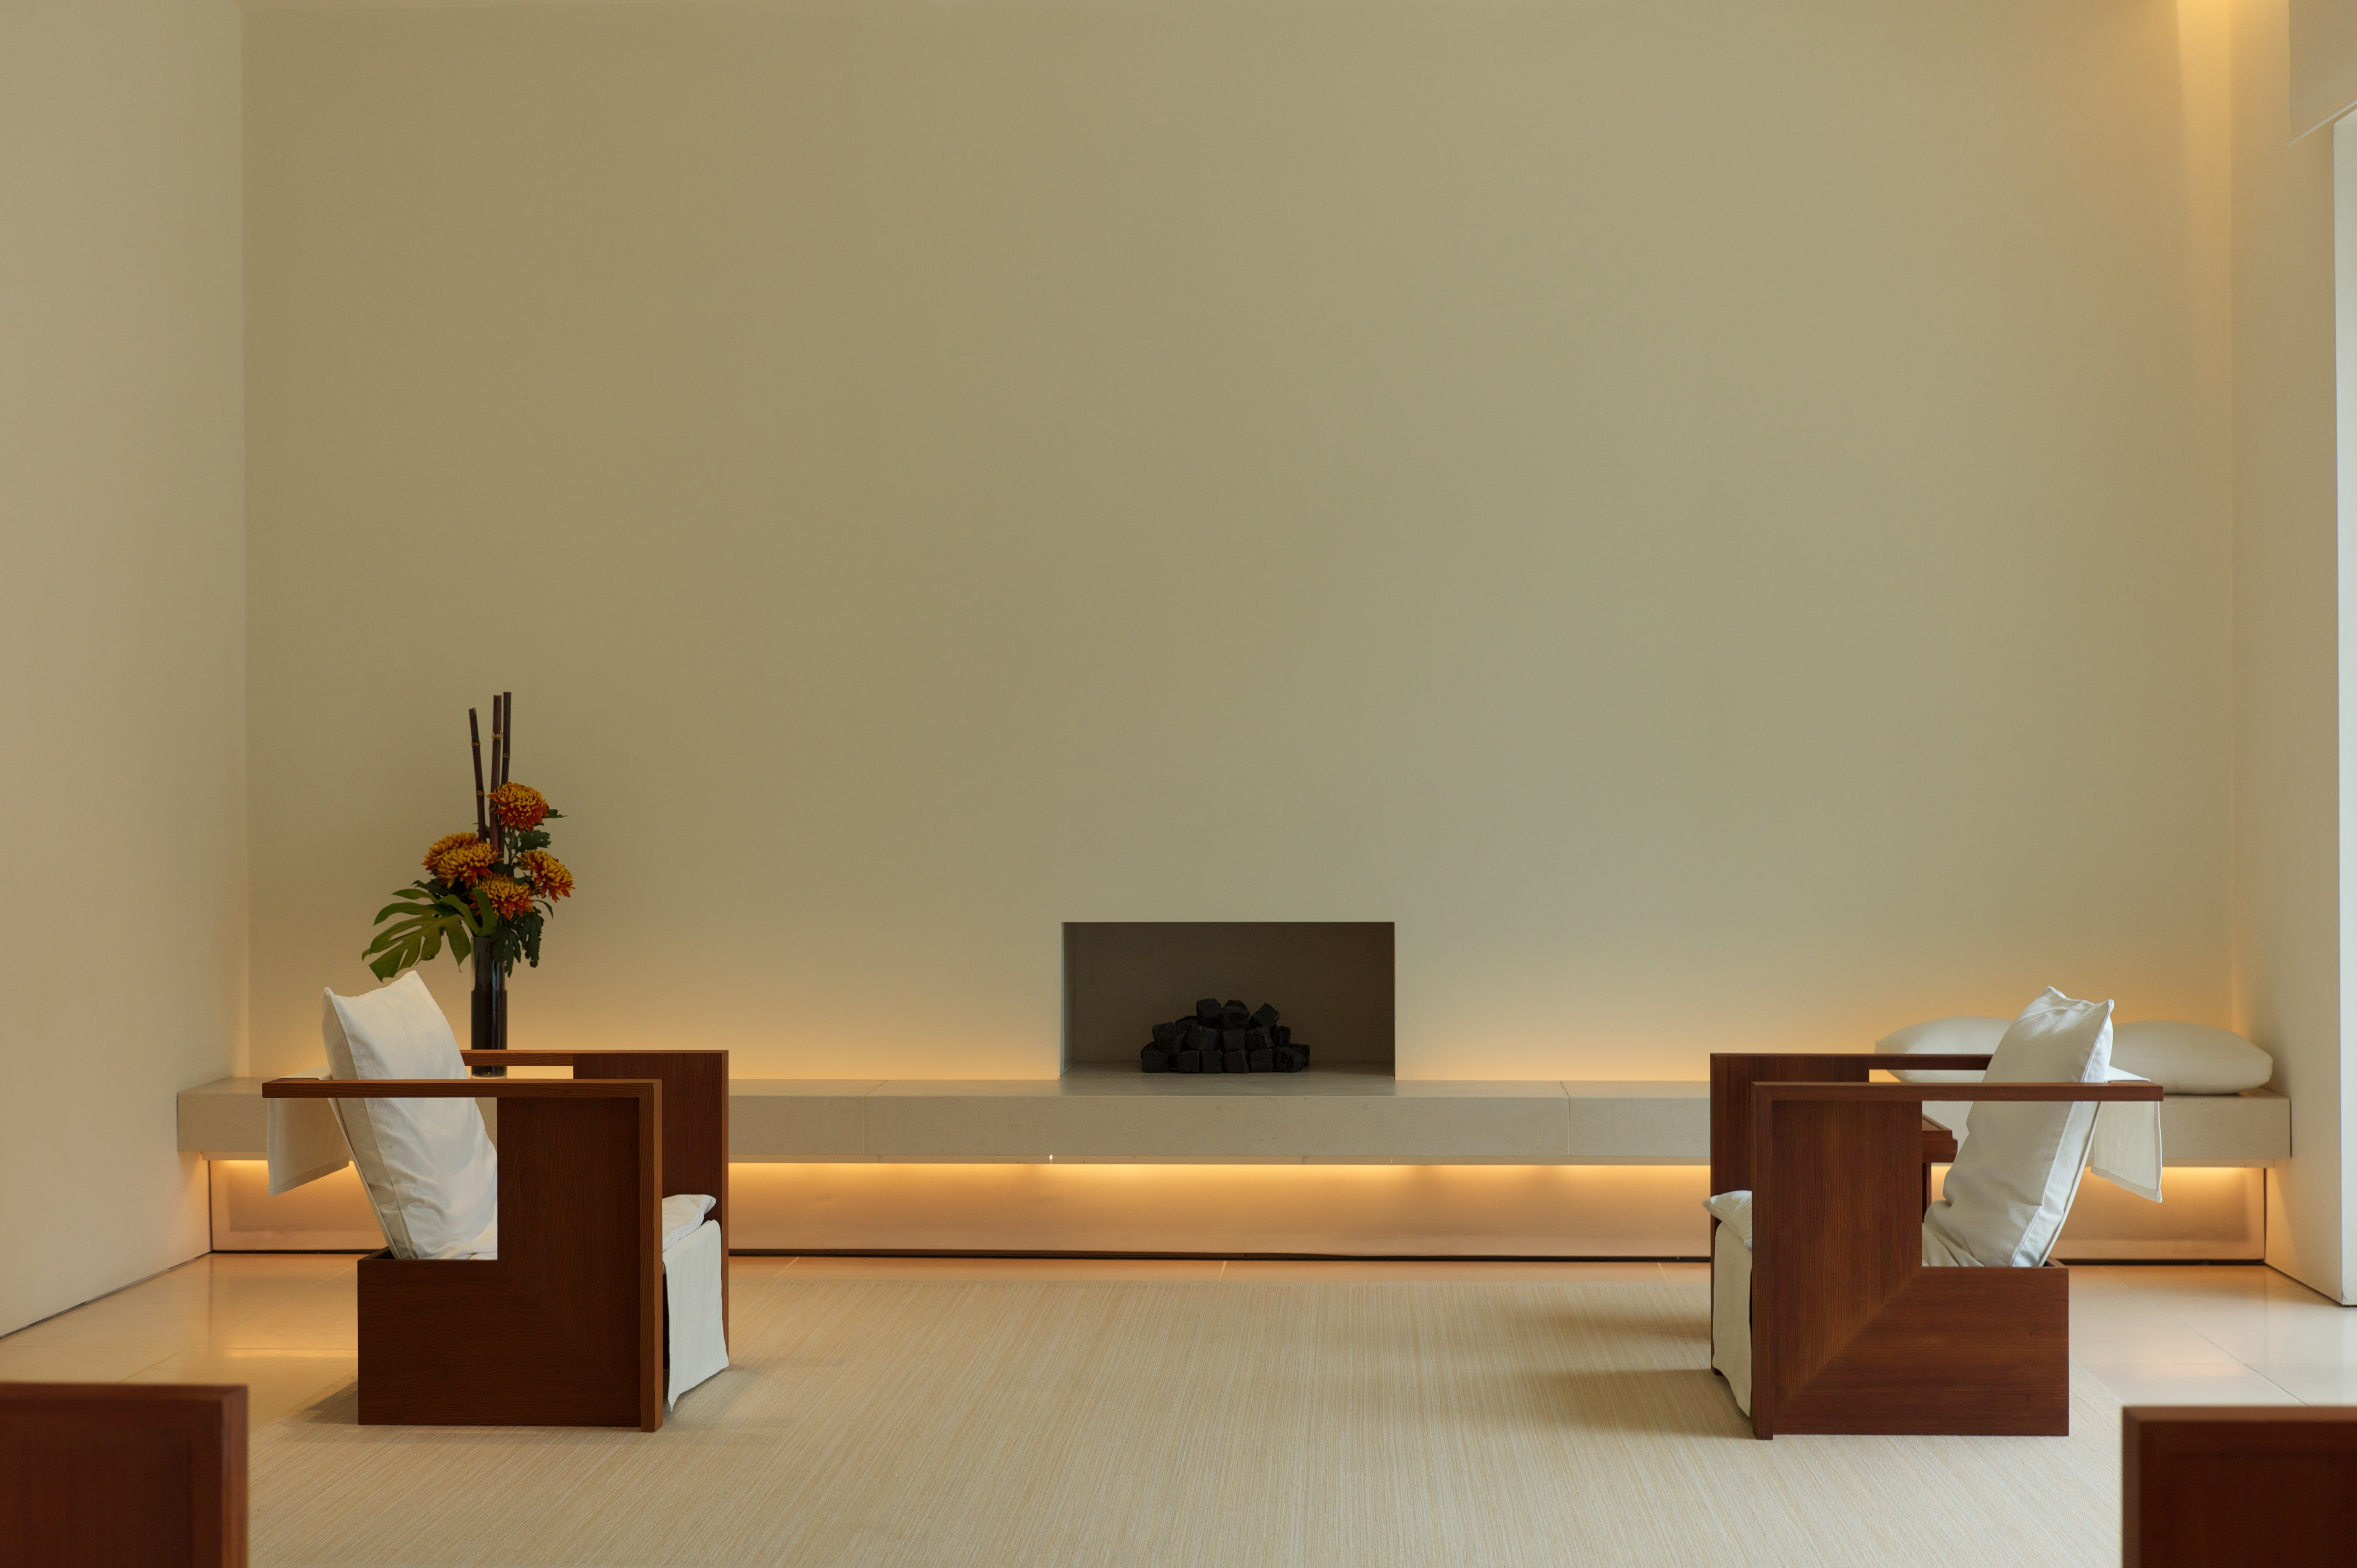 A very simple room with two chairs spaced far apart and a small fireplace between them,